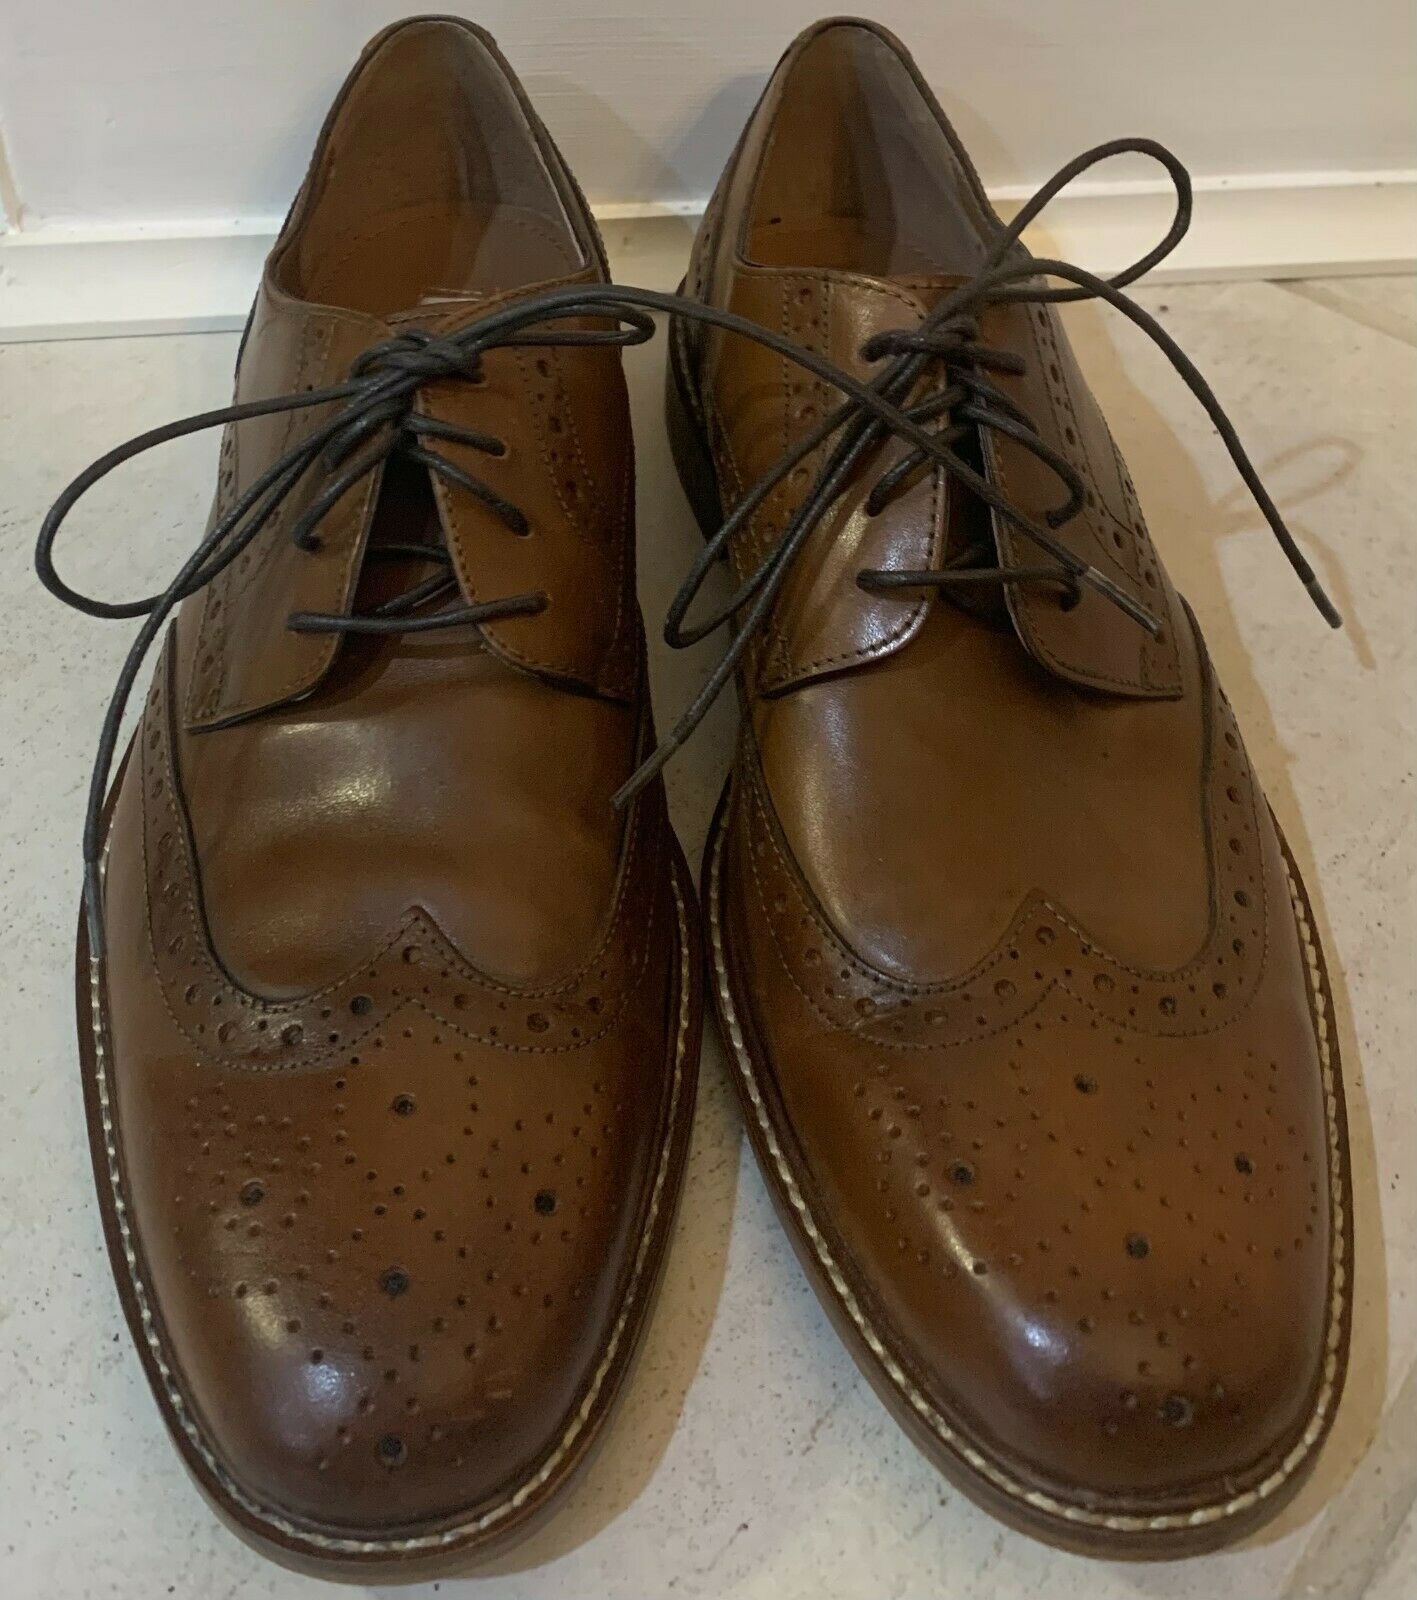 Joseph Abboud Brown Wingtip Loafers Size 8.5